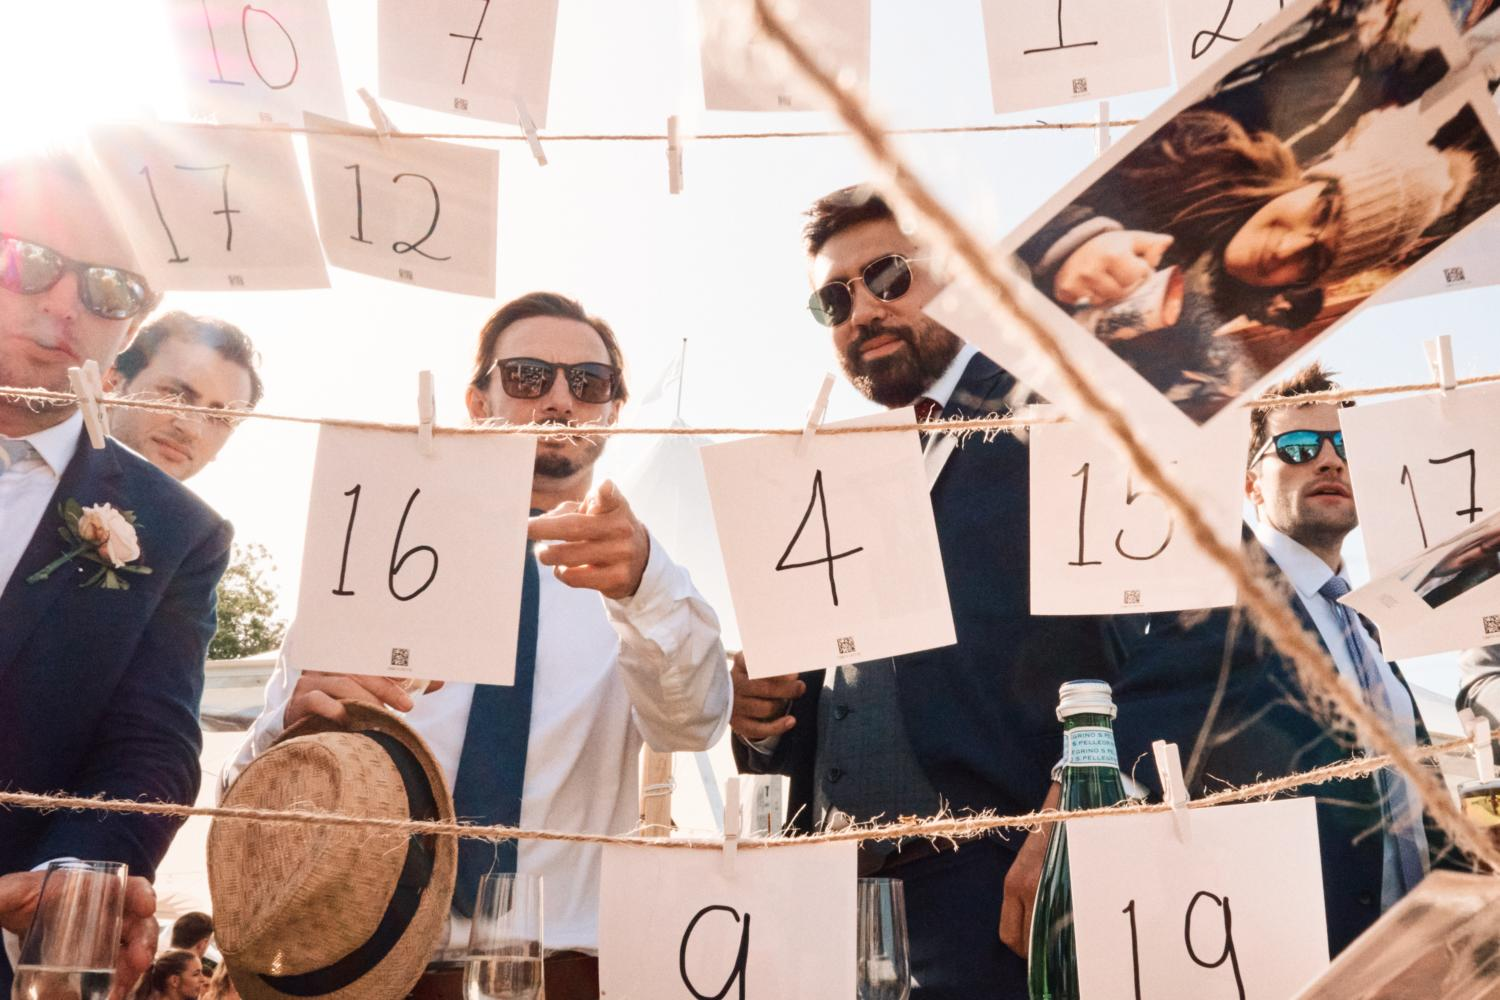 Men in sunglasses look at a picture display with numbers